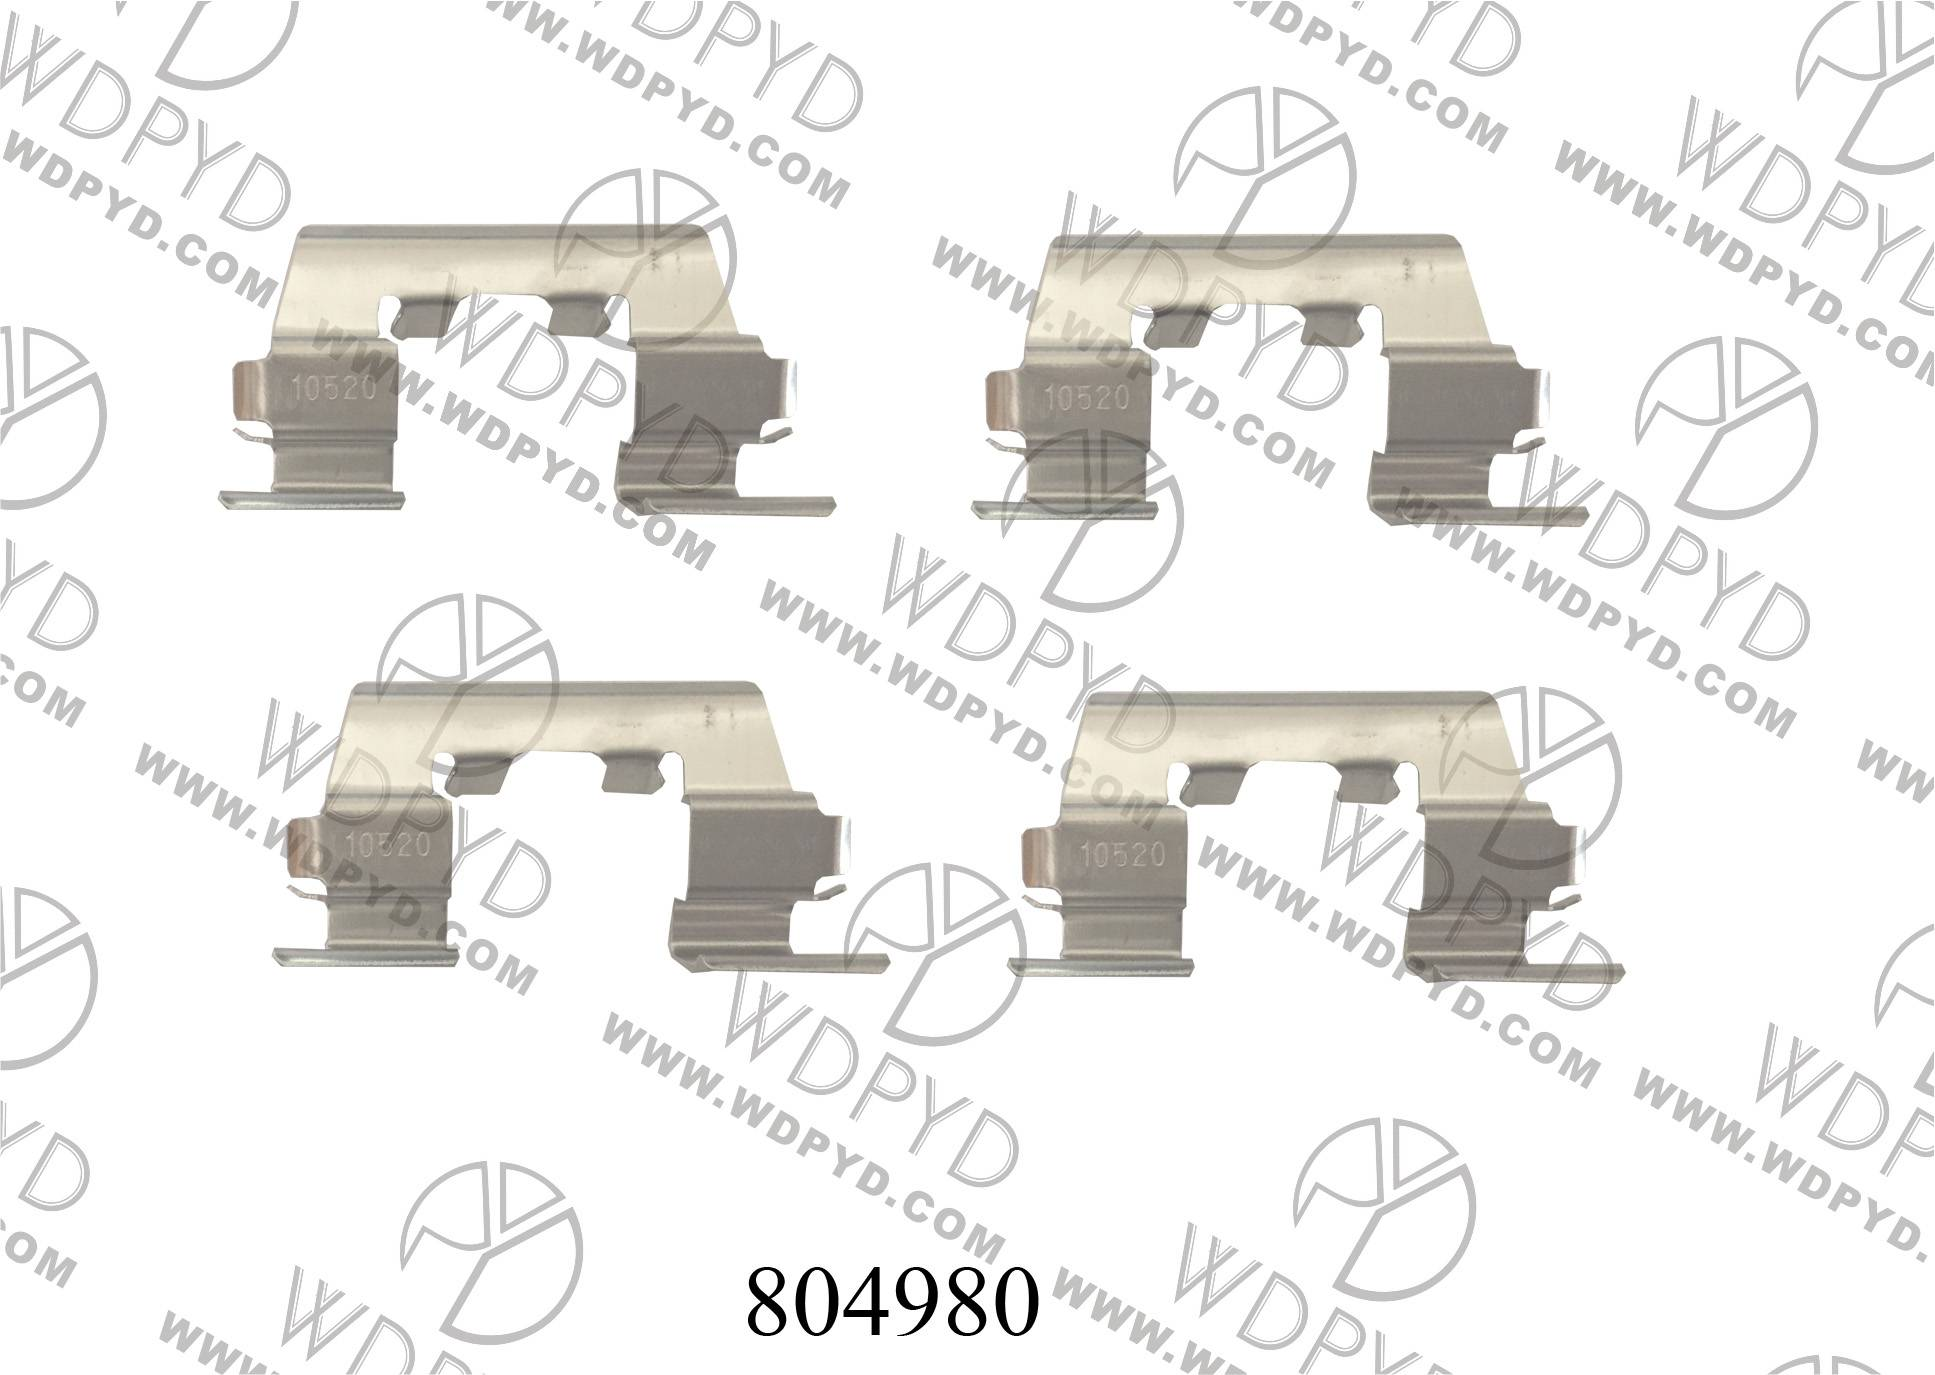 WELLDE DSIC BRAKE PAD HARDWARE KIT 804980 FOR HYUNDAI ACCENT EXCEL